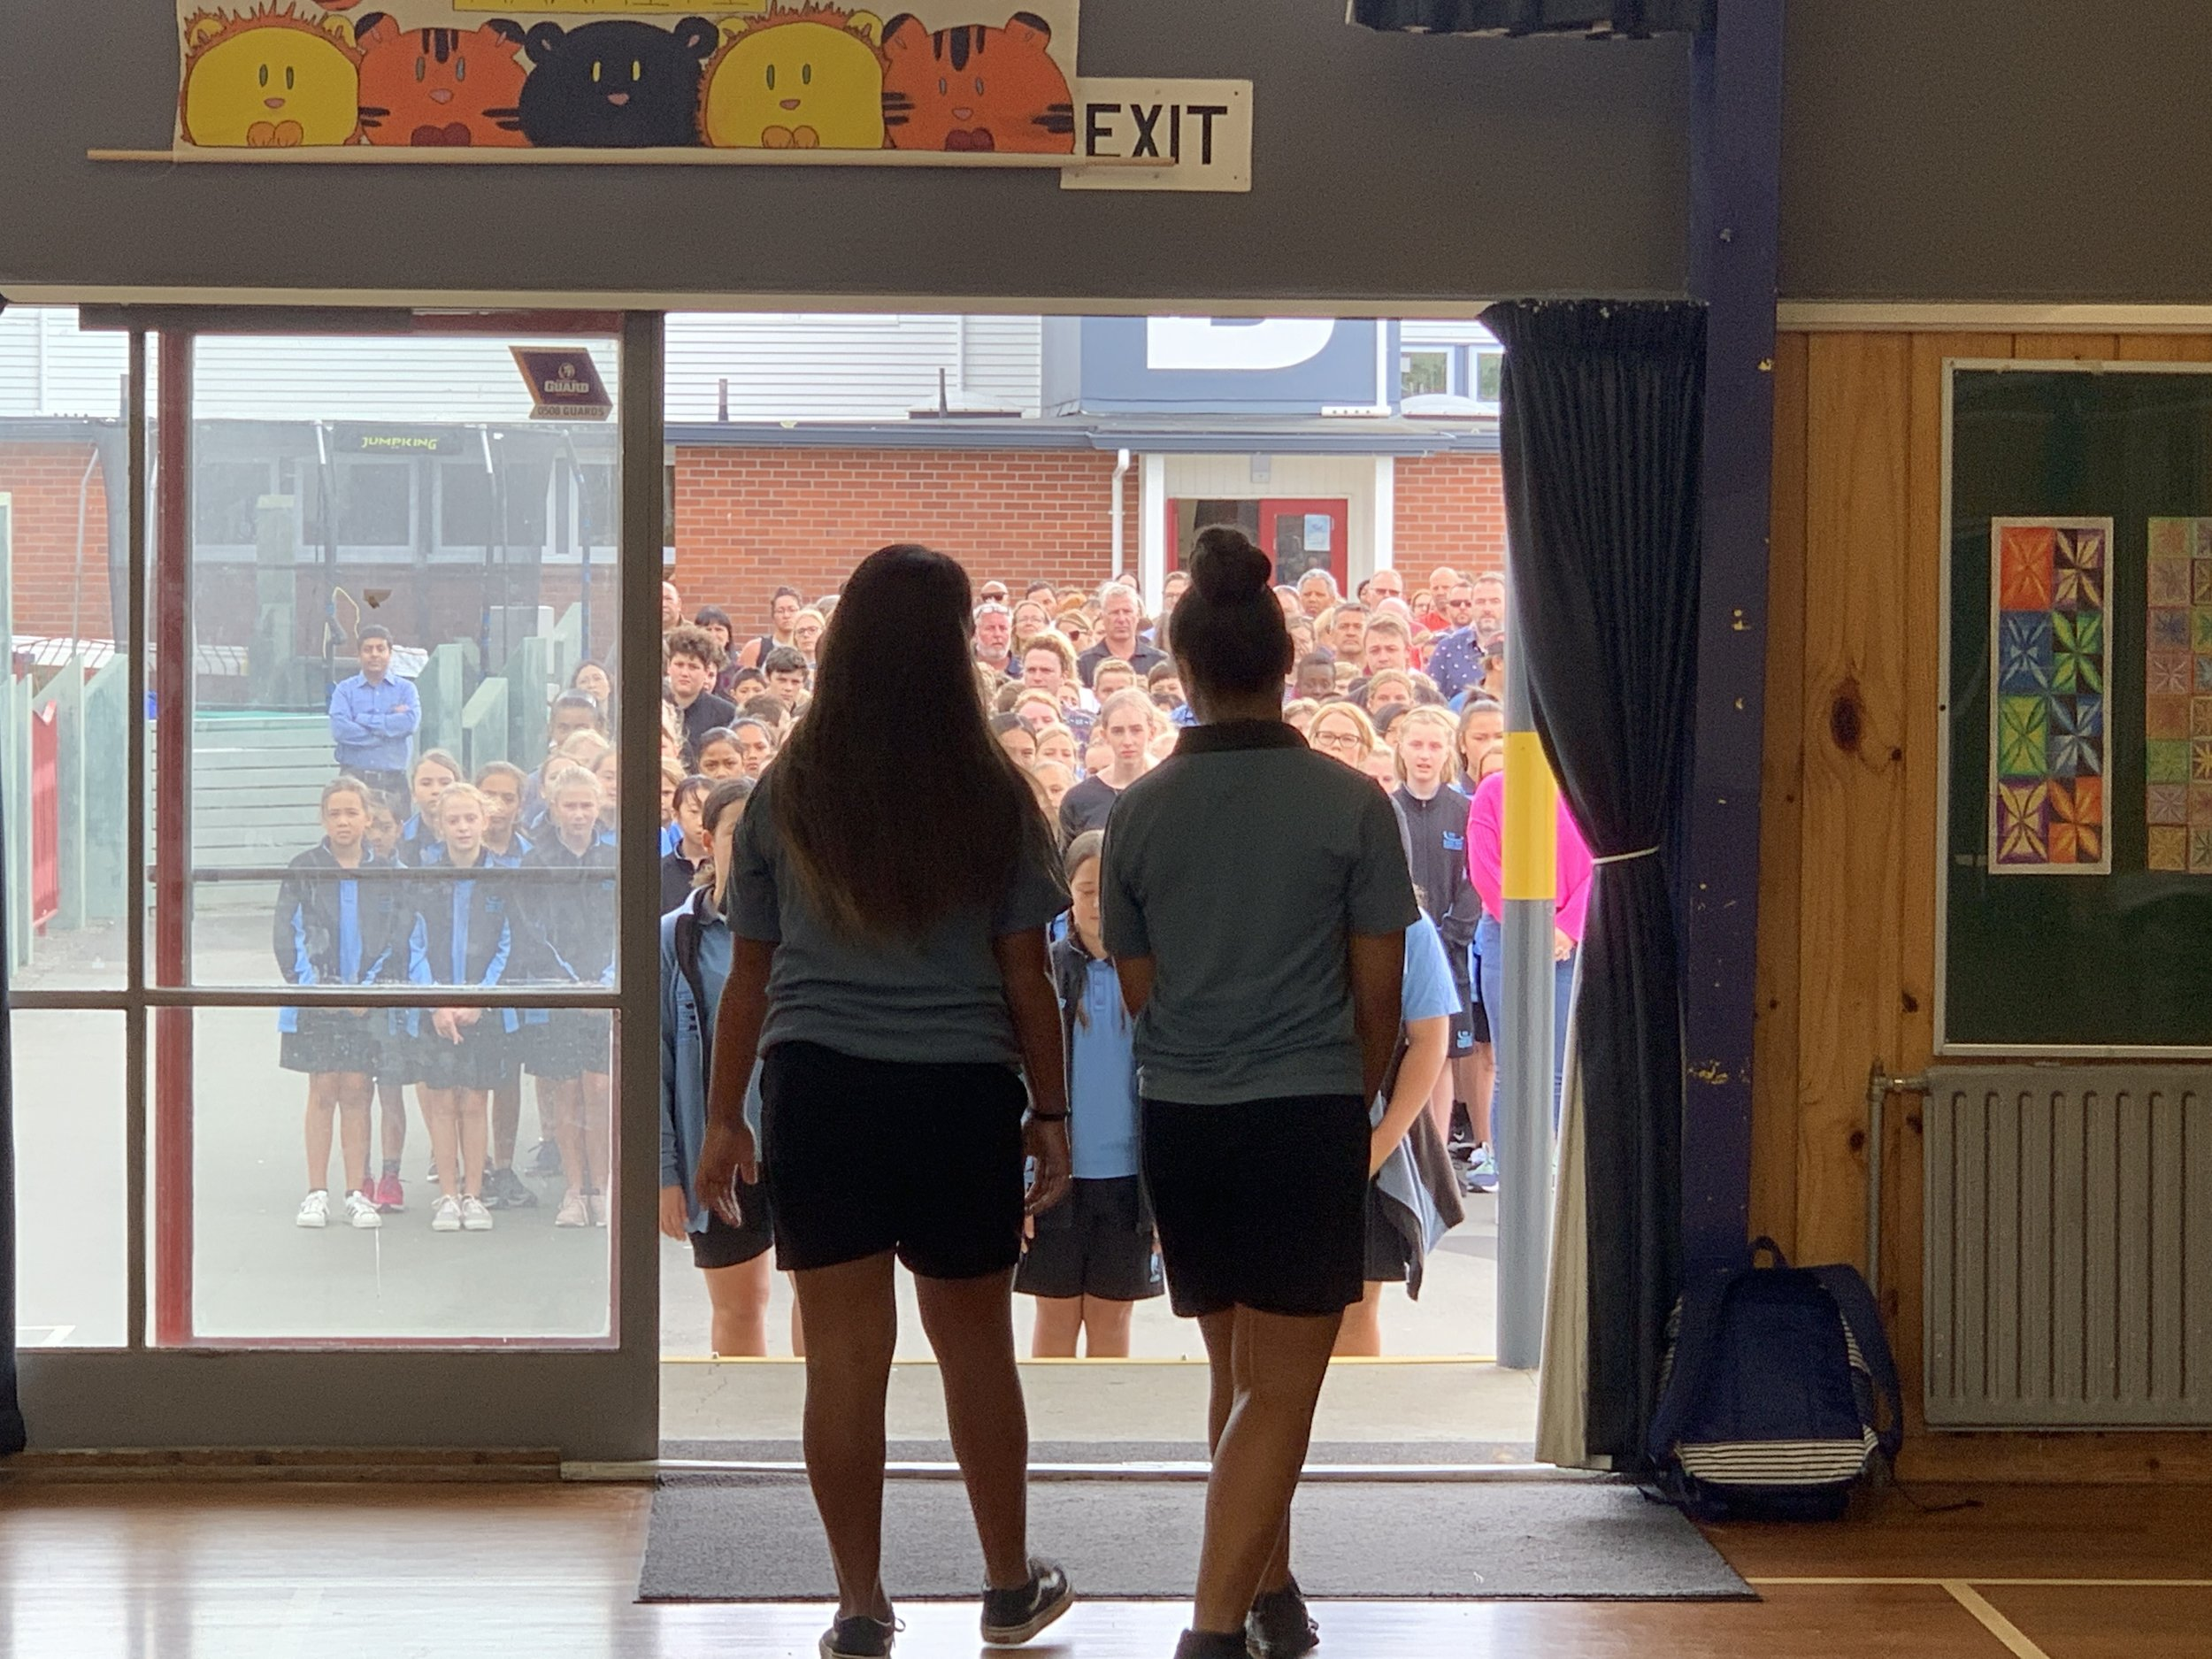 Our School - Evans Bay Intermediate School (EBIS) is a multicultural school specialising in the learning needs of Year 7 and 8 students.We opened in 1964 in a picturesque location overlooking Evans Bay and continue to cater for students in the Southern and Eastern suburbs of Wellington.